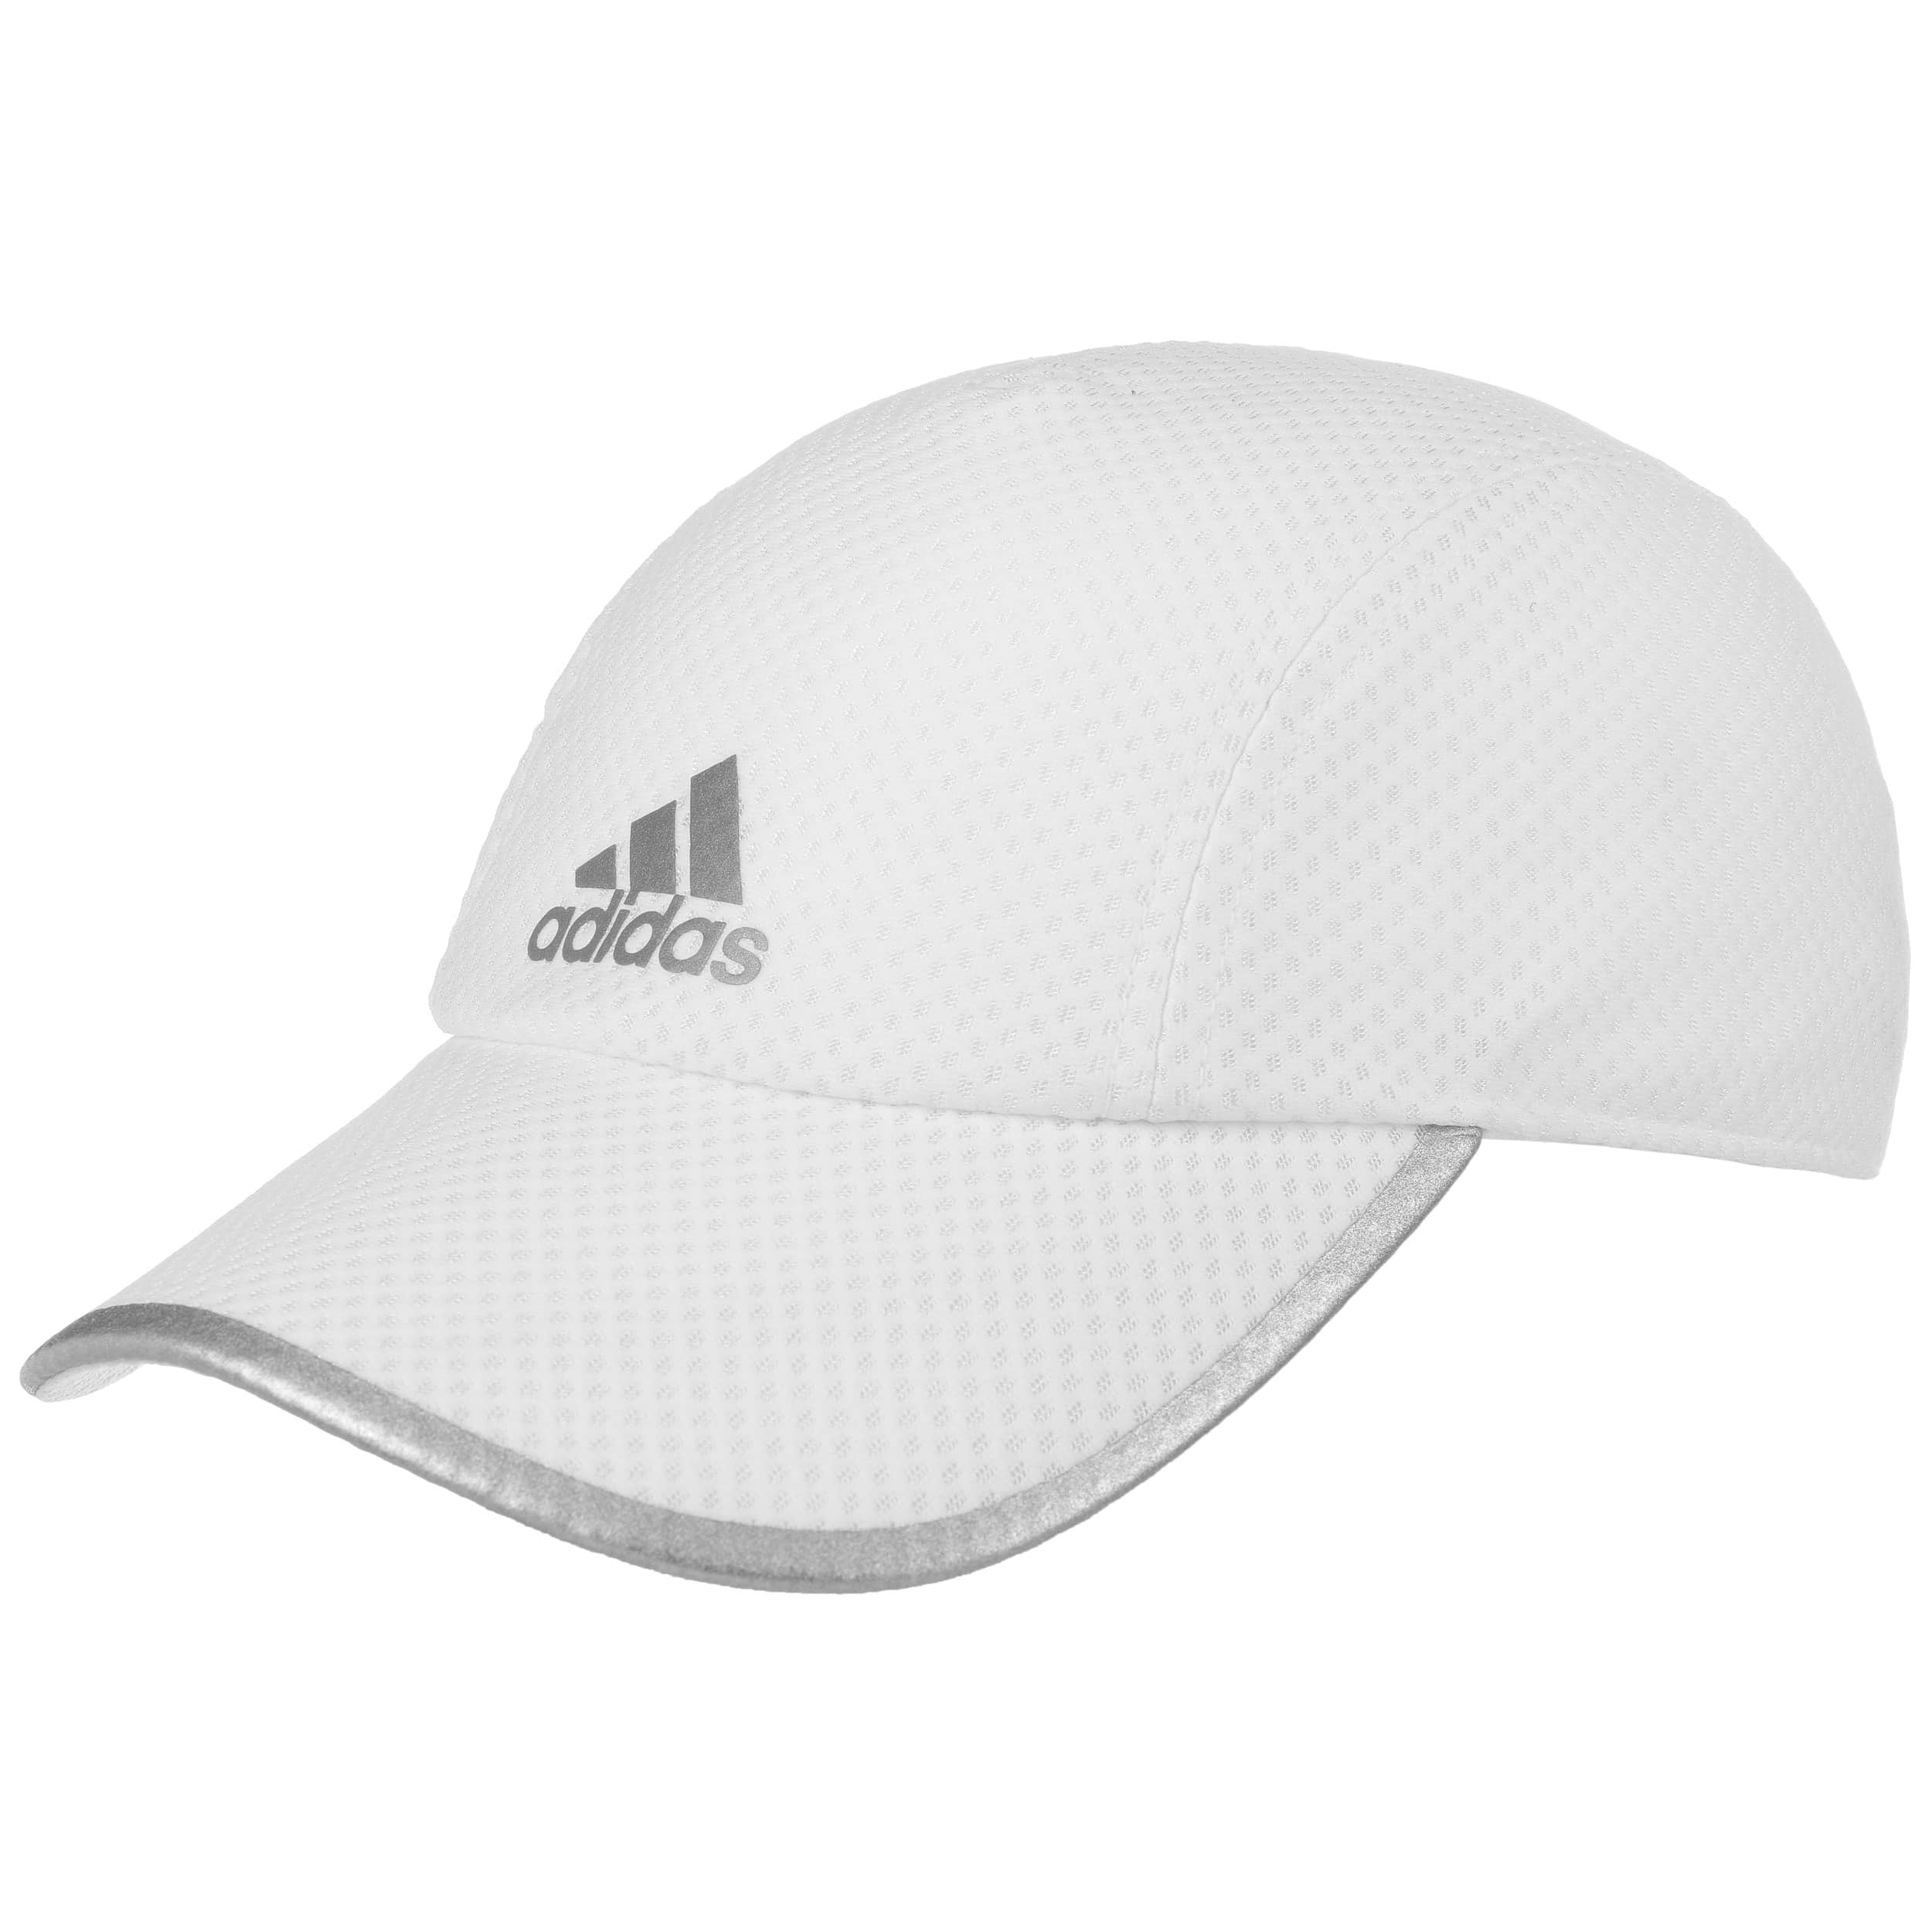 R96 Climacool Cap by adidas